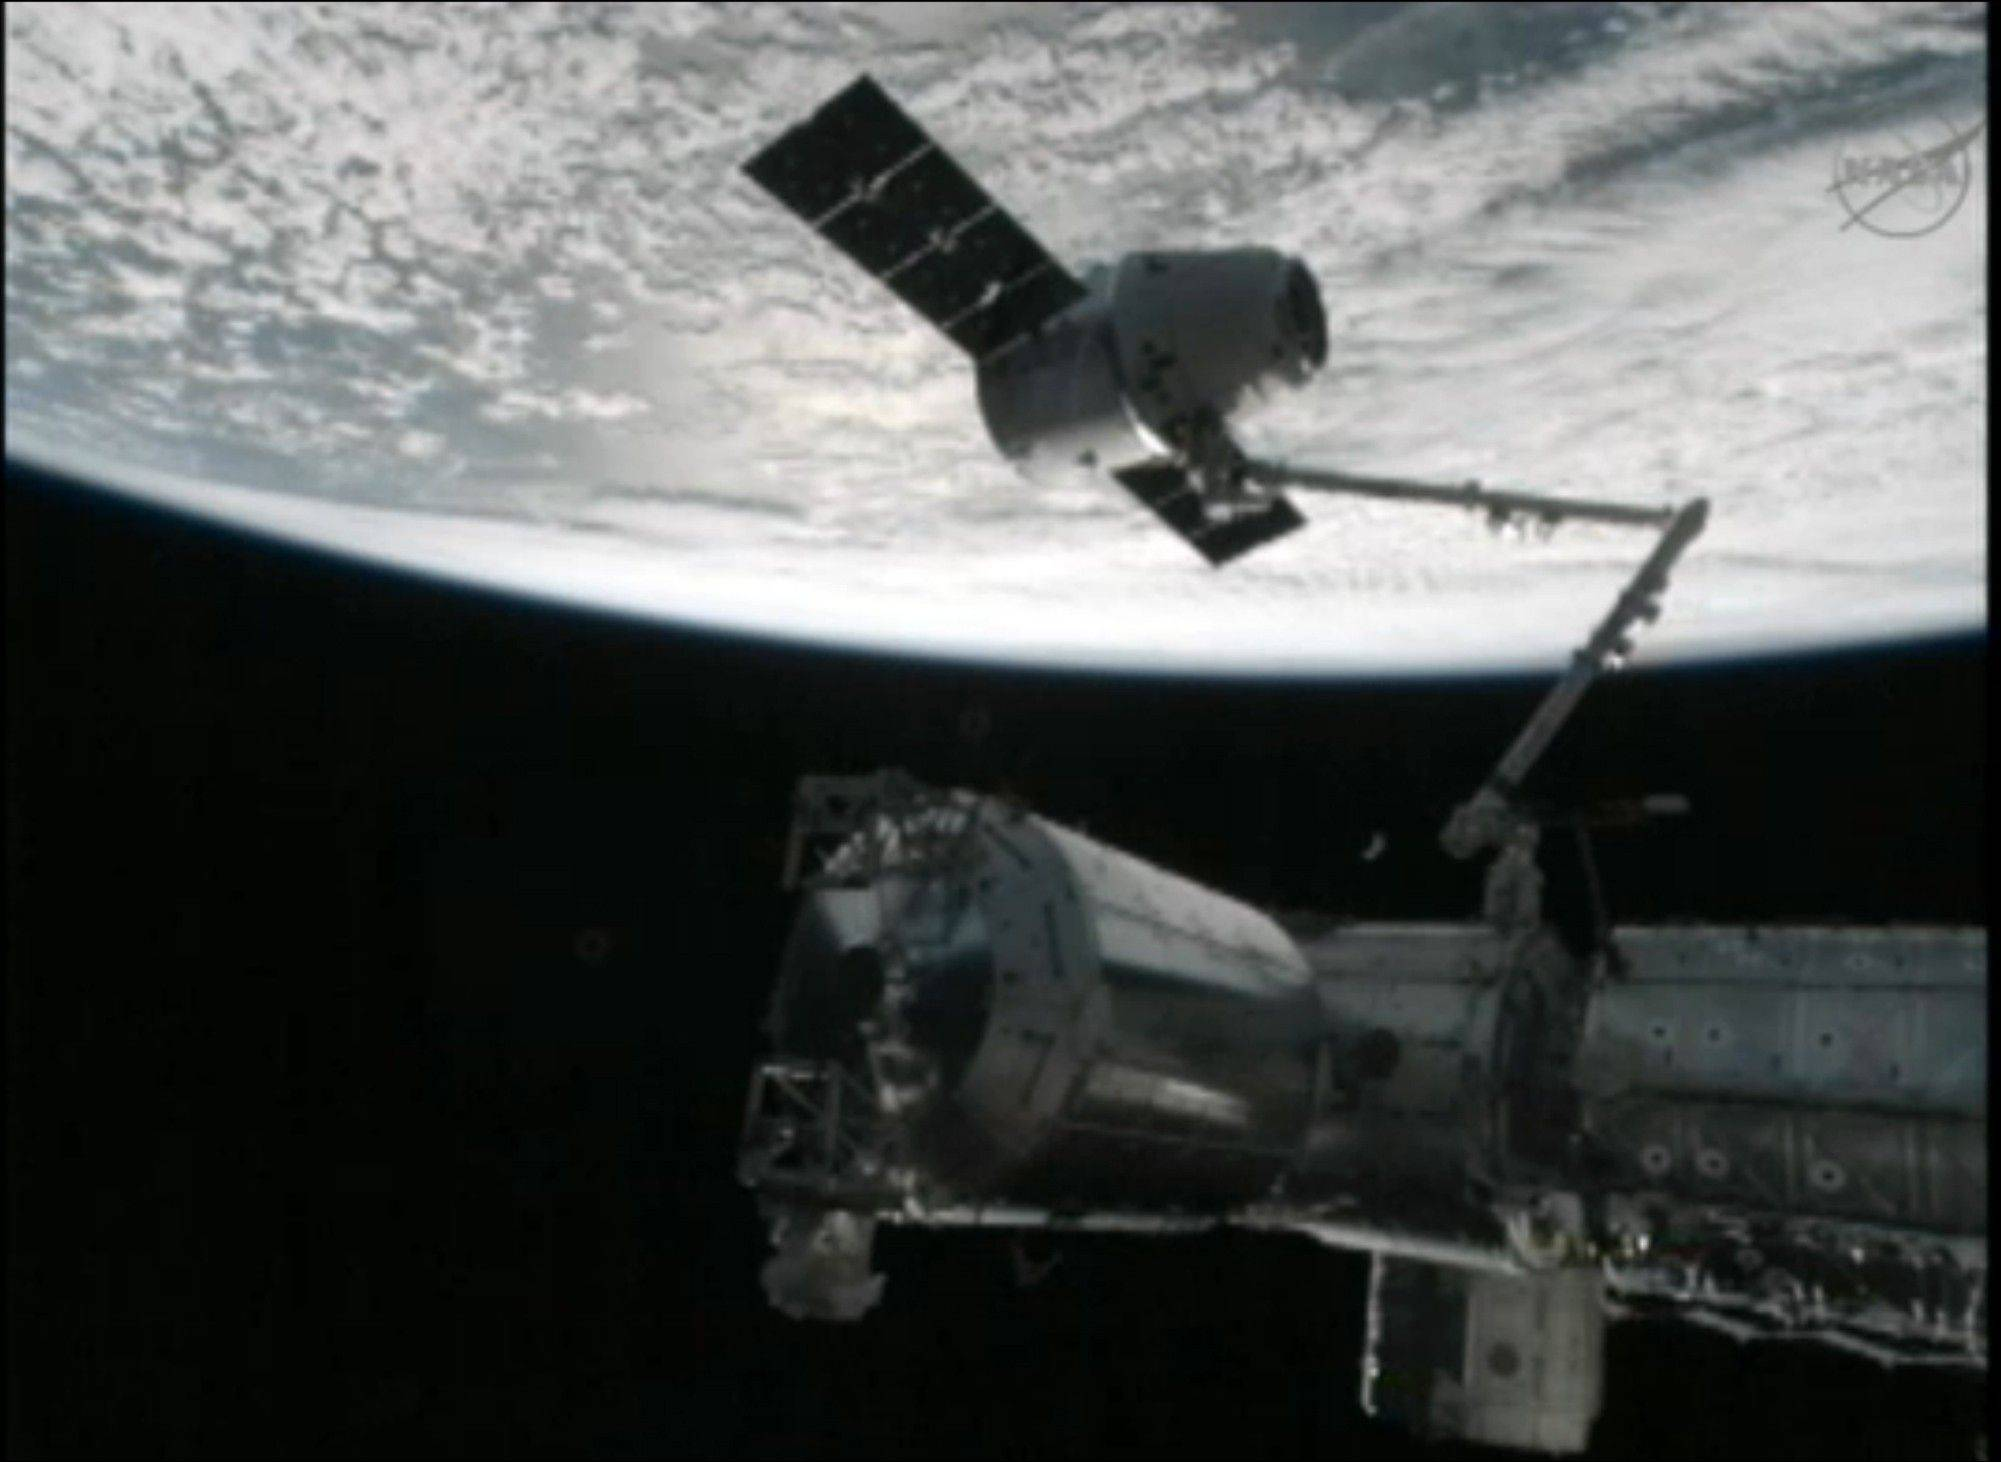 This image from NASA-TV shows the capture of the Dragon capsule by a robot arm on the International Space Station as they passed over the South Atlantic Ocean early Wednesday Oct. 10, 2012. It's the first official delivery by the California-based SpaceX company under a $1.6 billion contract with NASA. The contract calls for 12 such shipments.